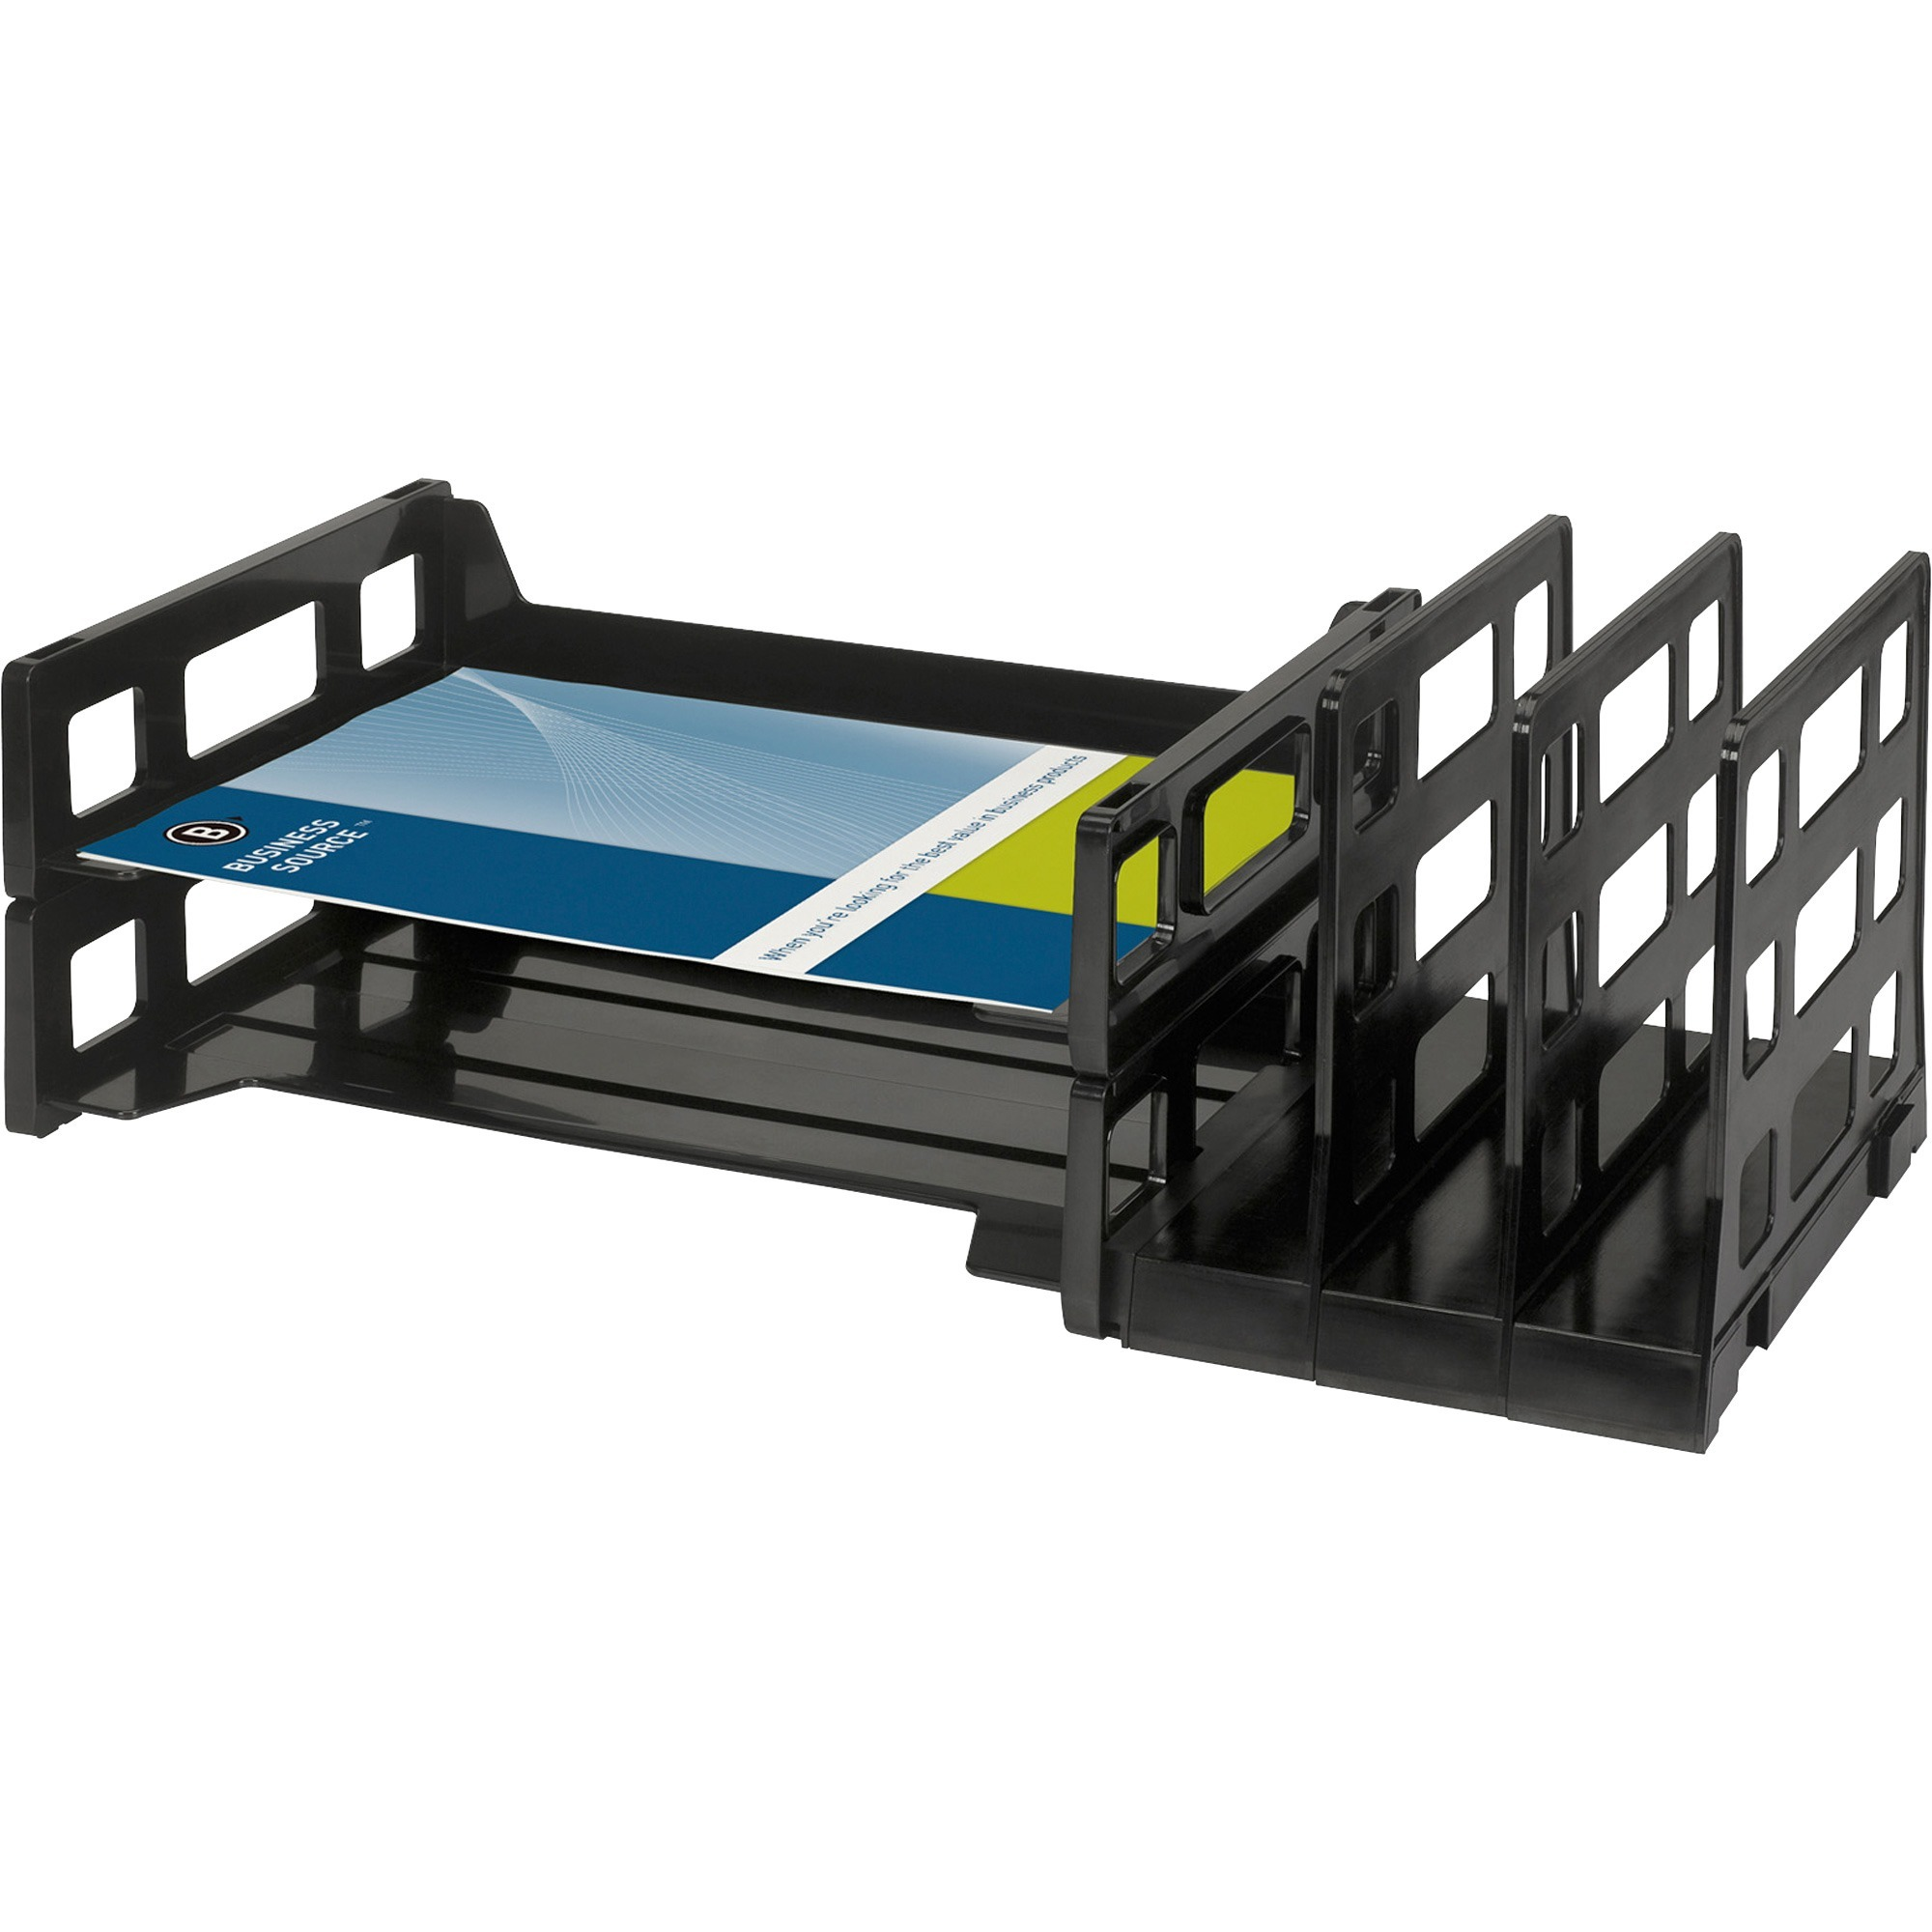 Business Source Combo 2 Tray Vertical Organizer 3 8 Height X 14 Width 9 Depth Desktop Recycled Black Plastic 1each